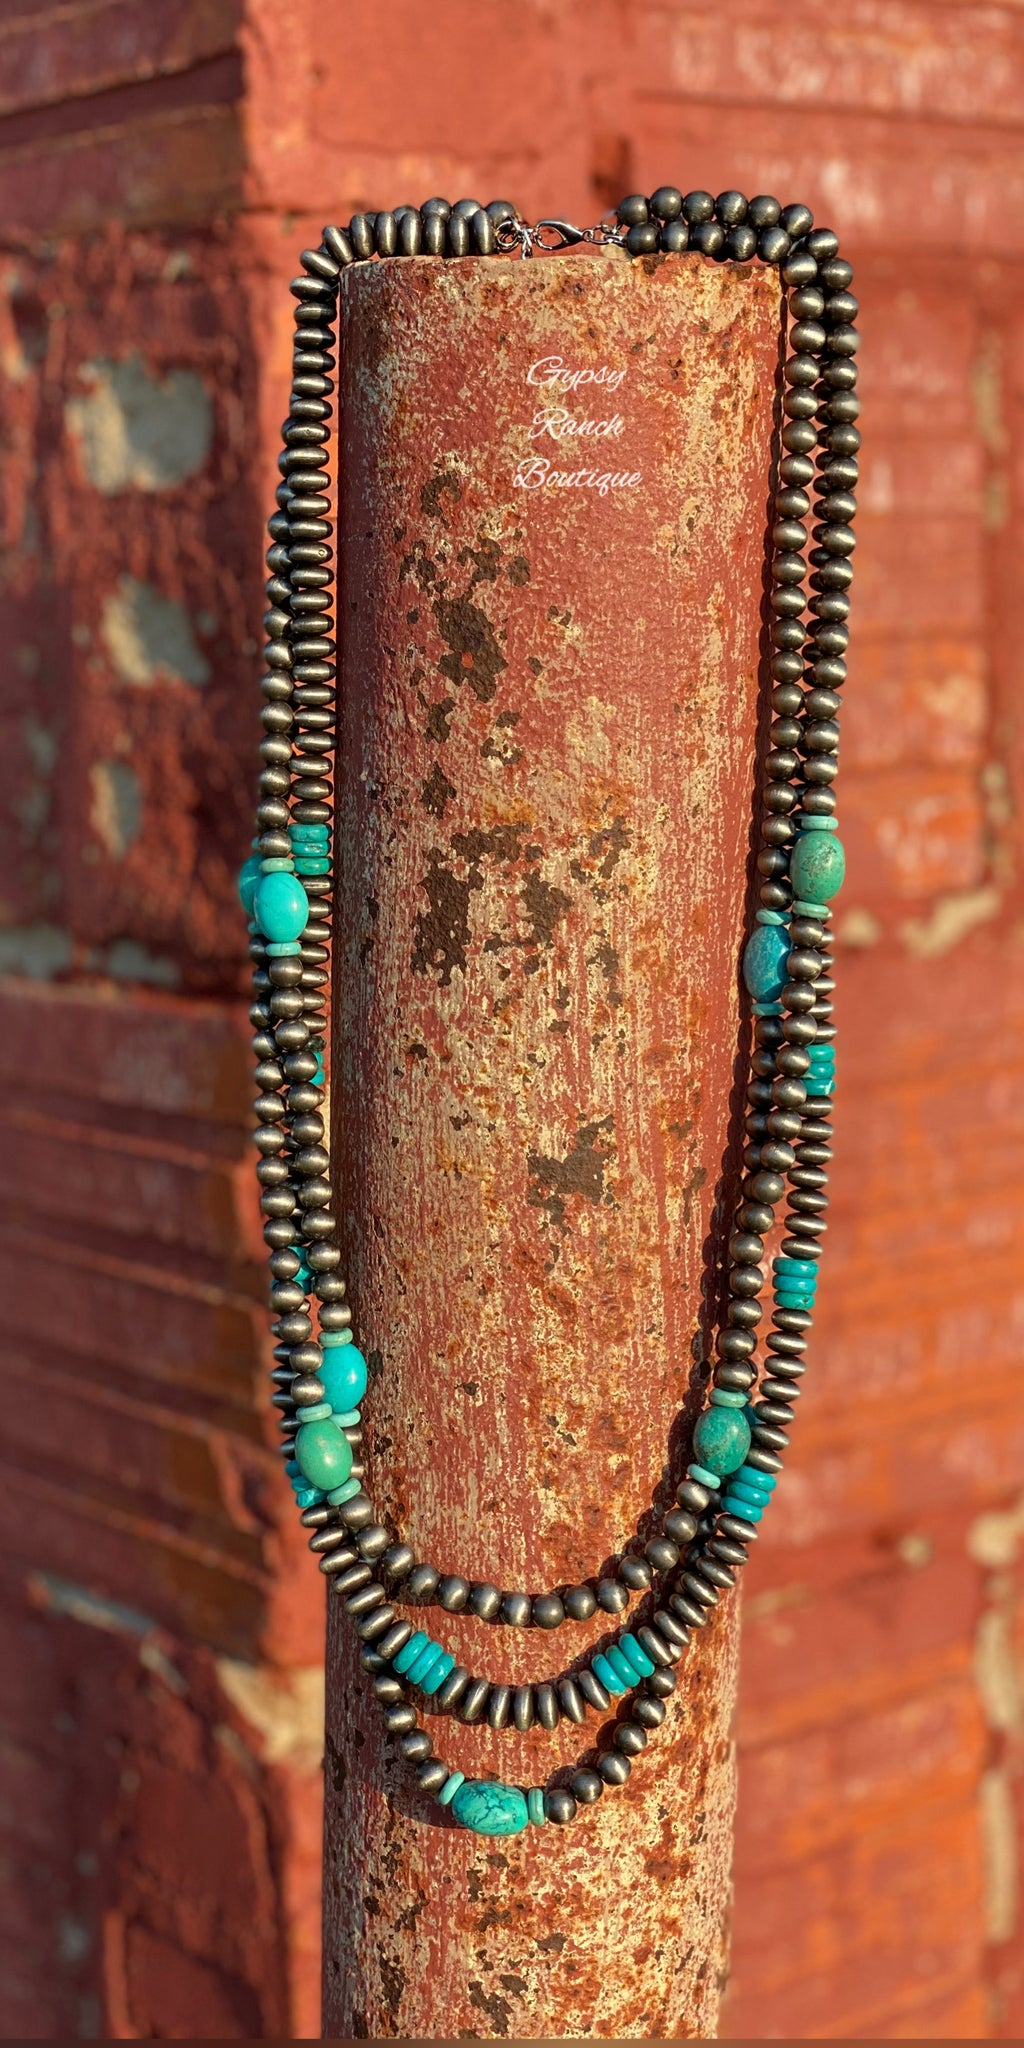 Felicity Turquoise Silver Multi Strand Necklace